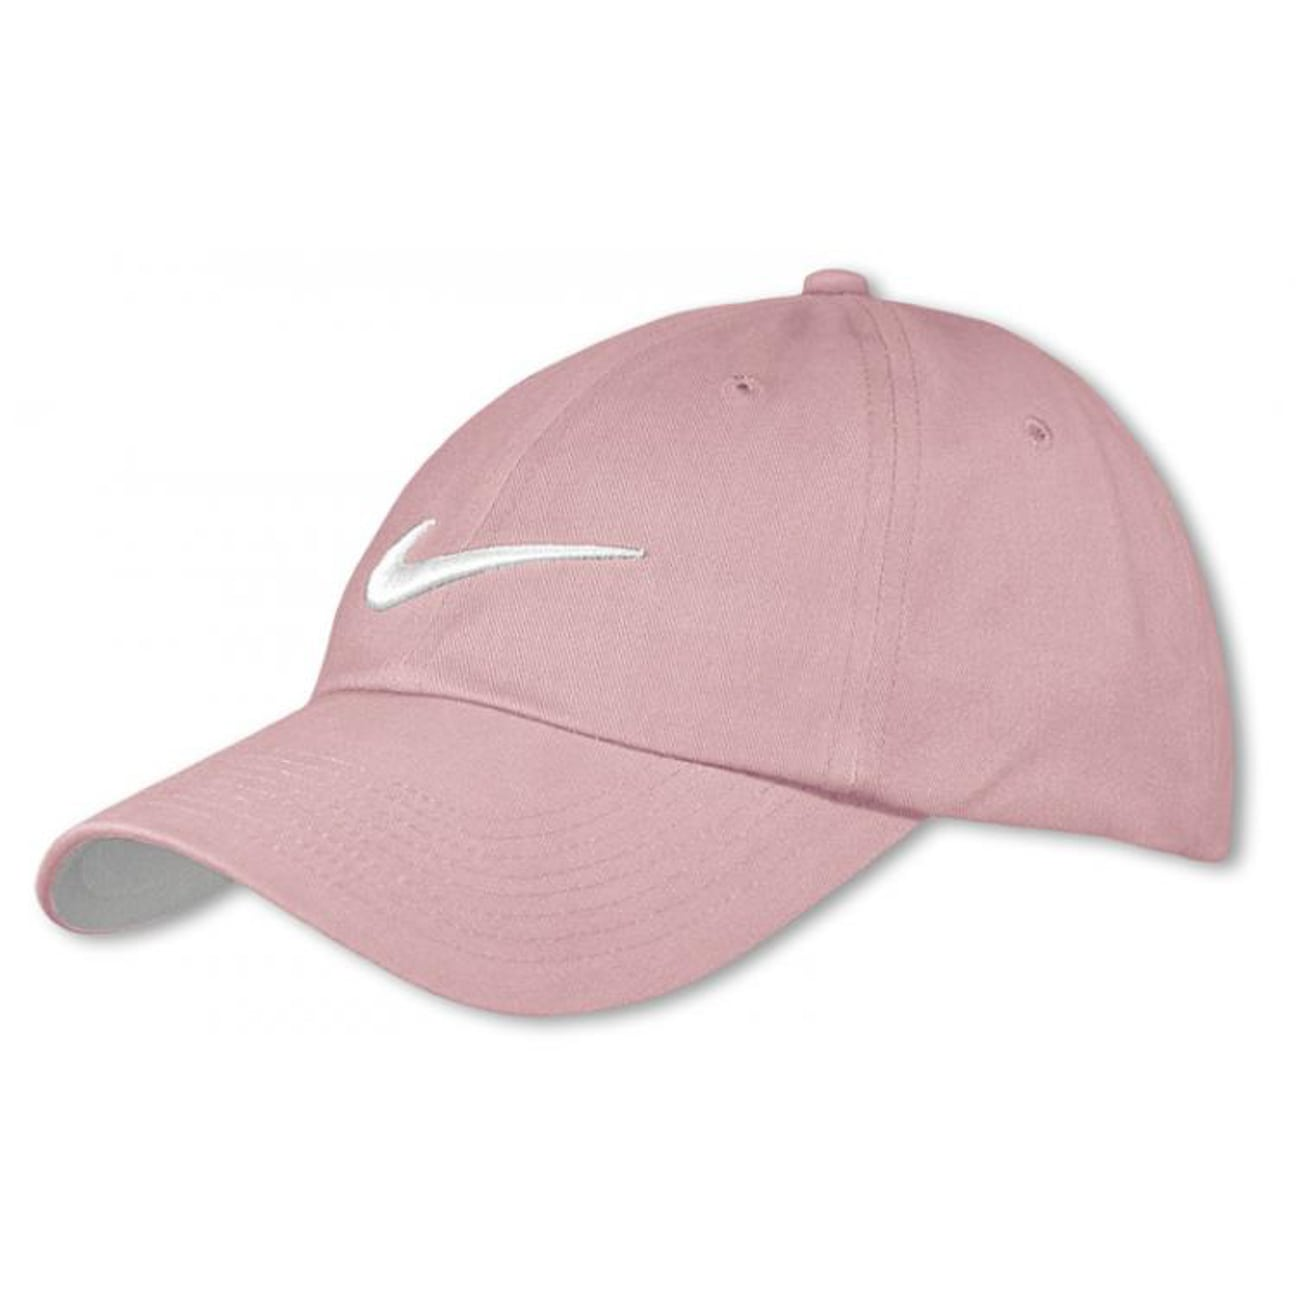 1281164834ee8 ... Structured Swoosh Cap by Nike - rose 1 ...